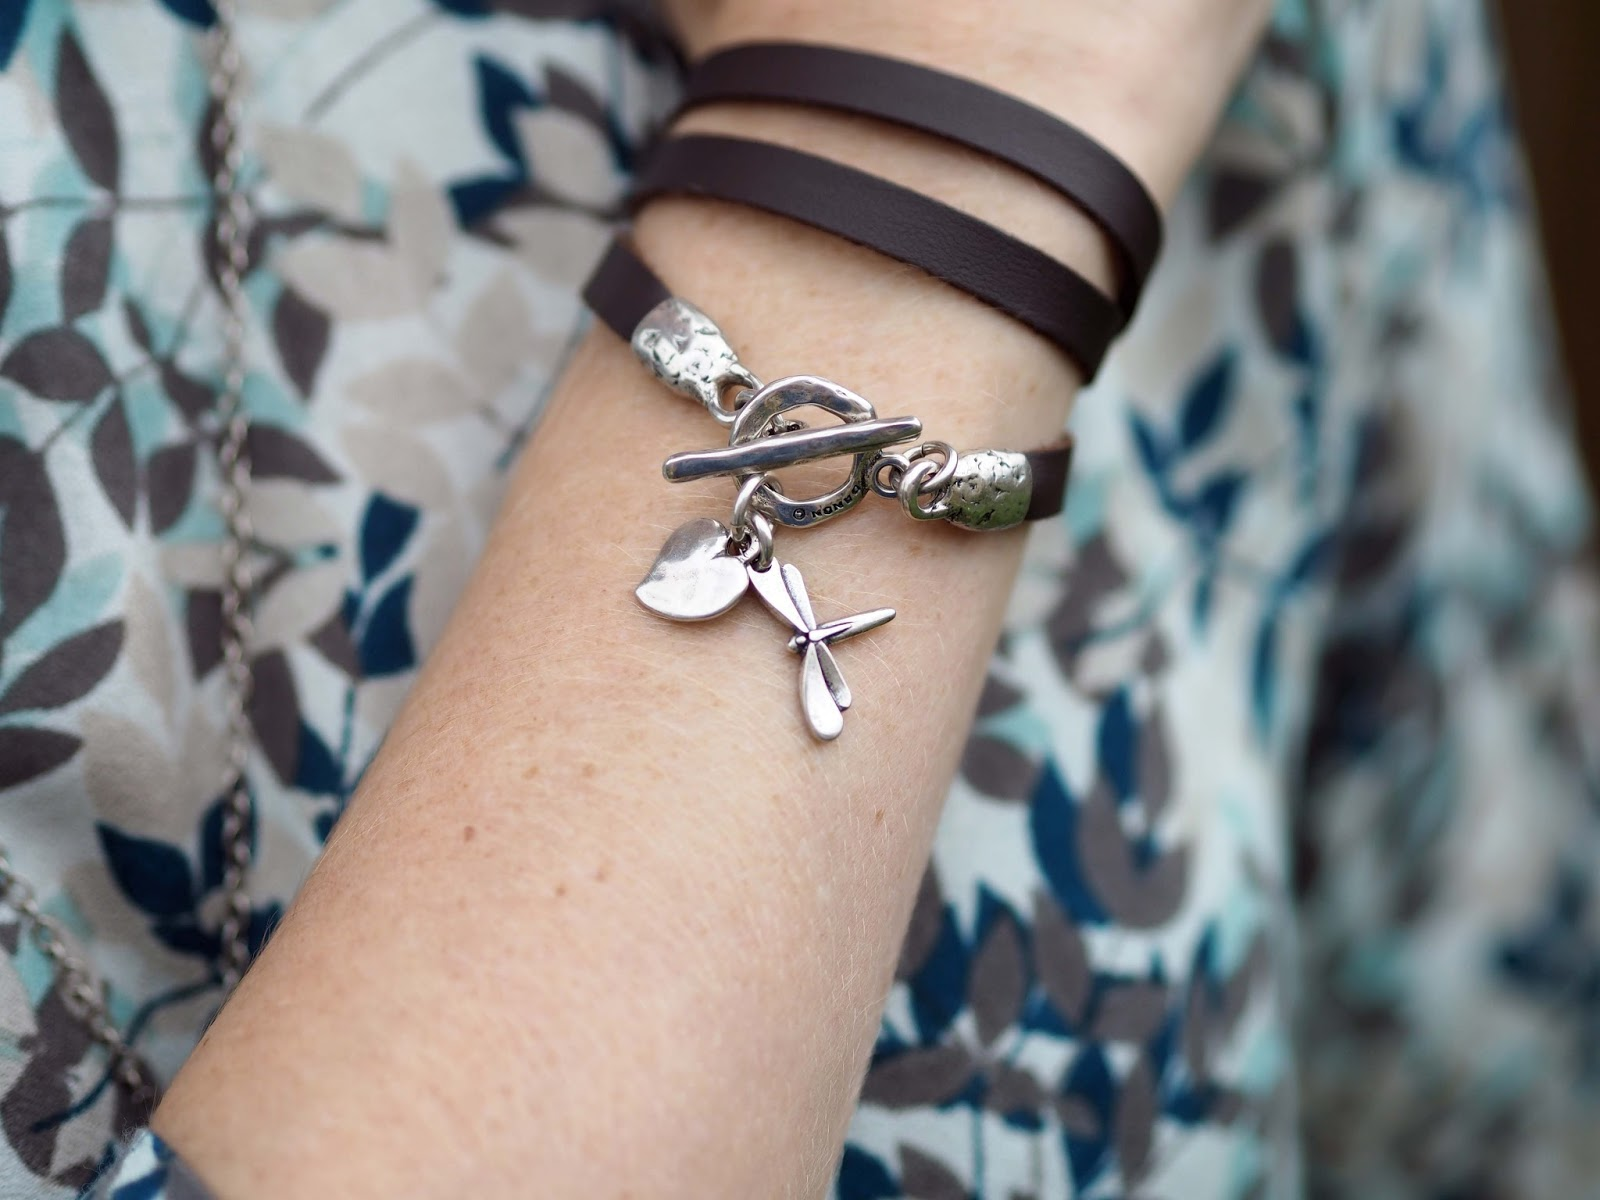 Danon dragonfly leather wrap bracelet from www.lizzyo.co.uk